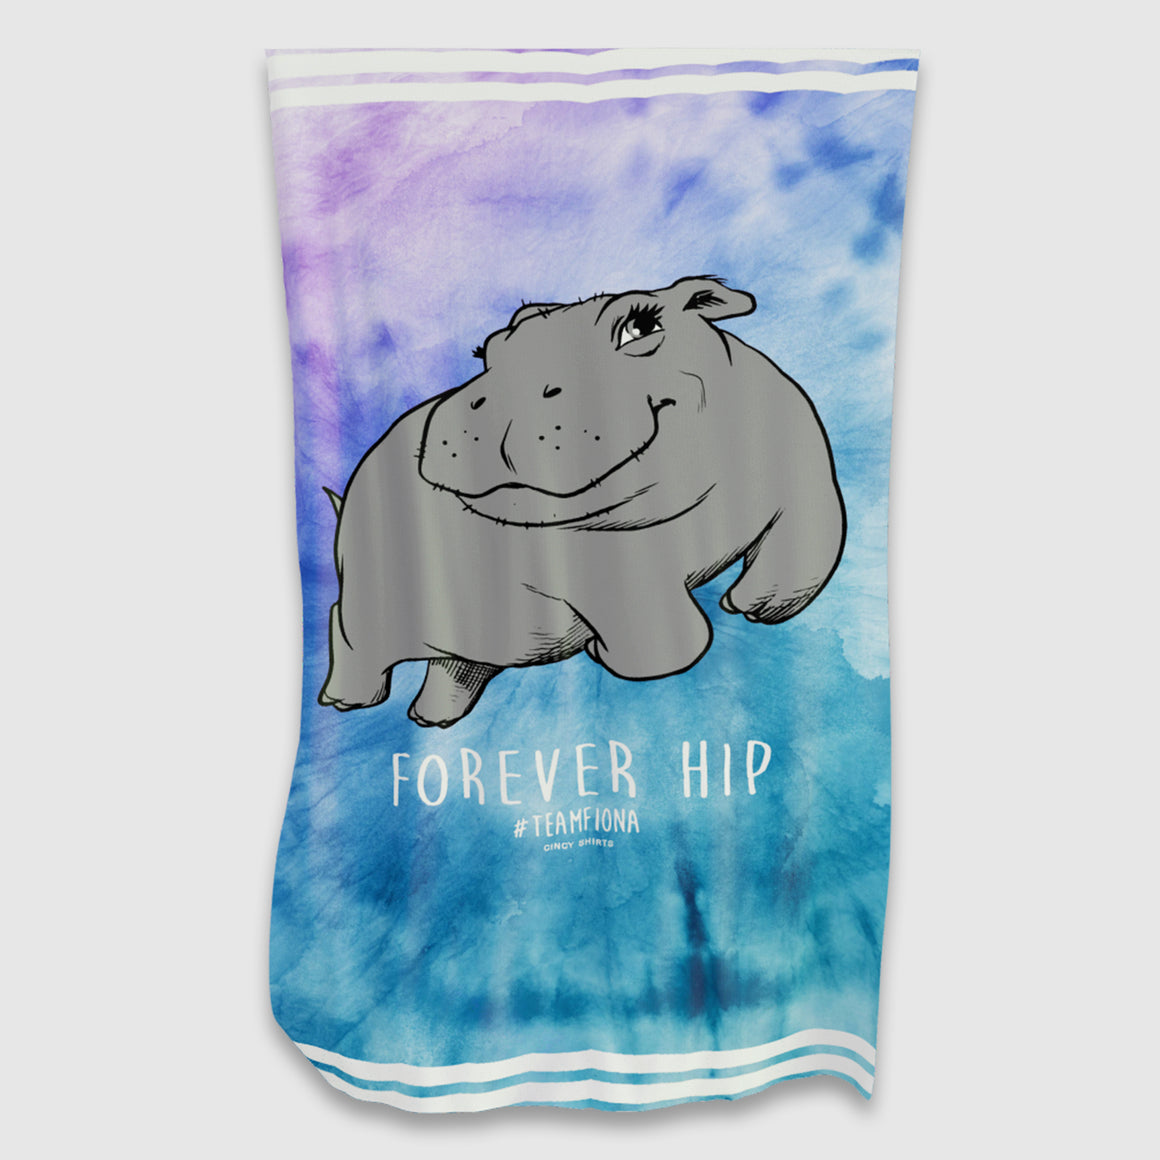 """Forever Hip"" #TeamFiona Tie-Dye Beach Towel - Cincy Shirts"